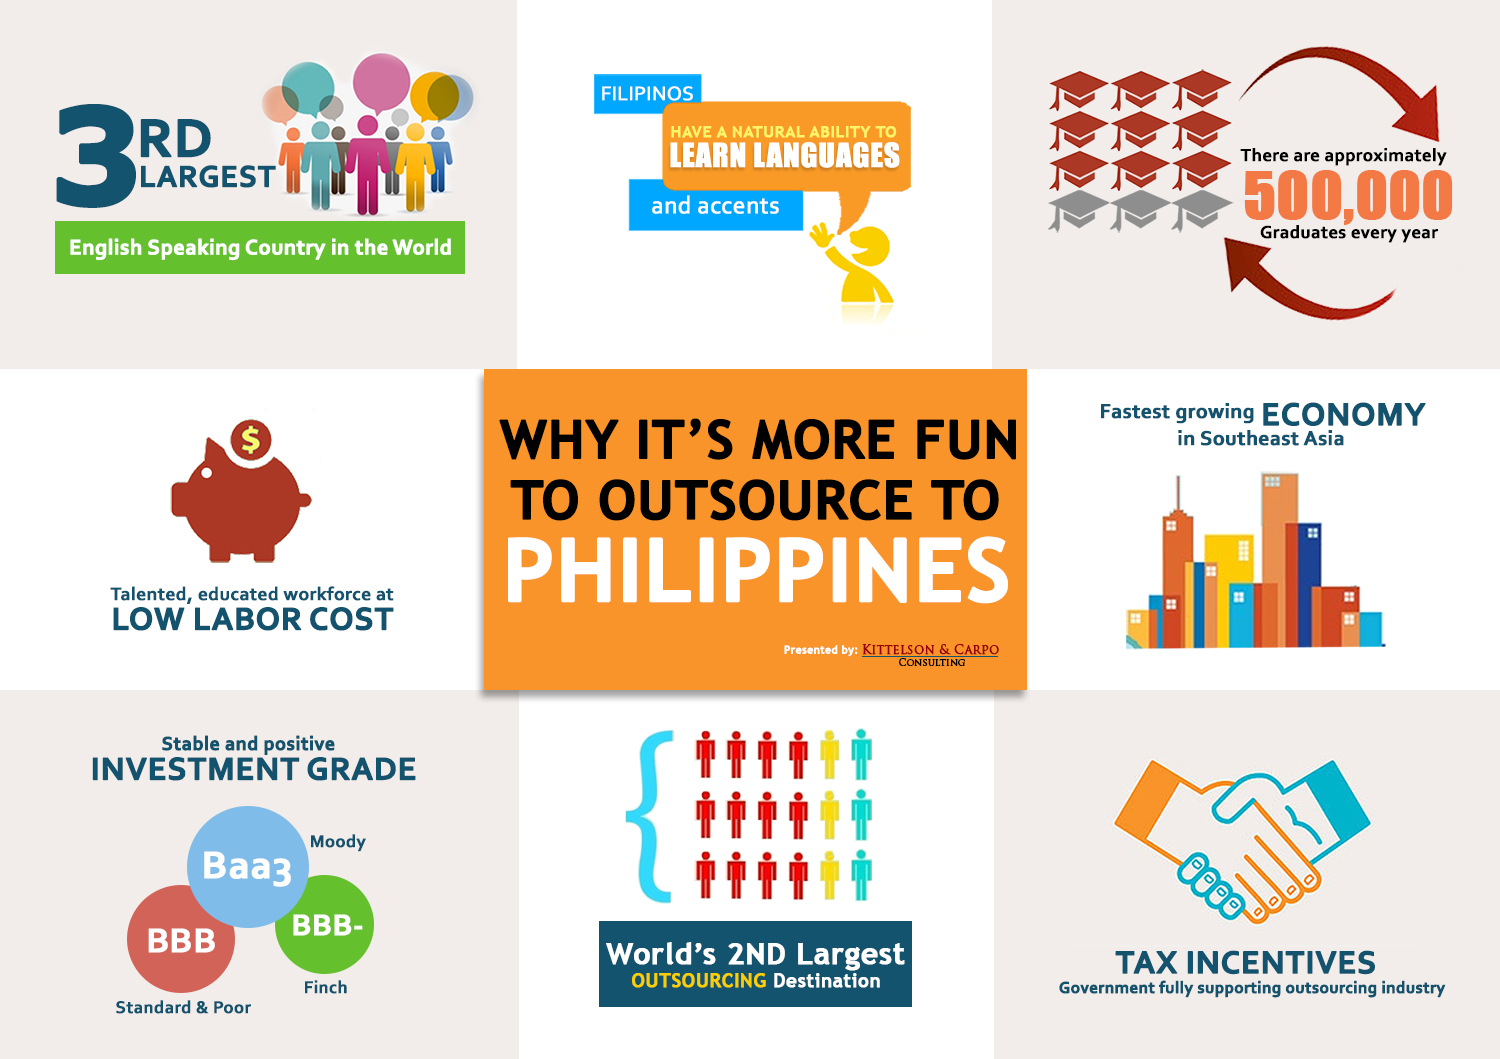 Why it's more fun to outsource to Philippines